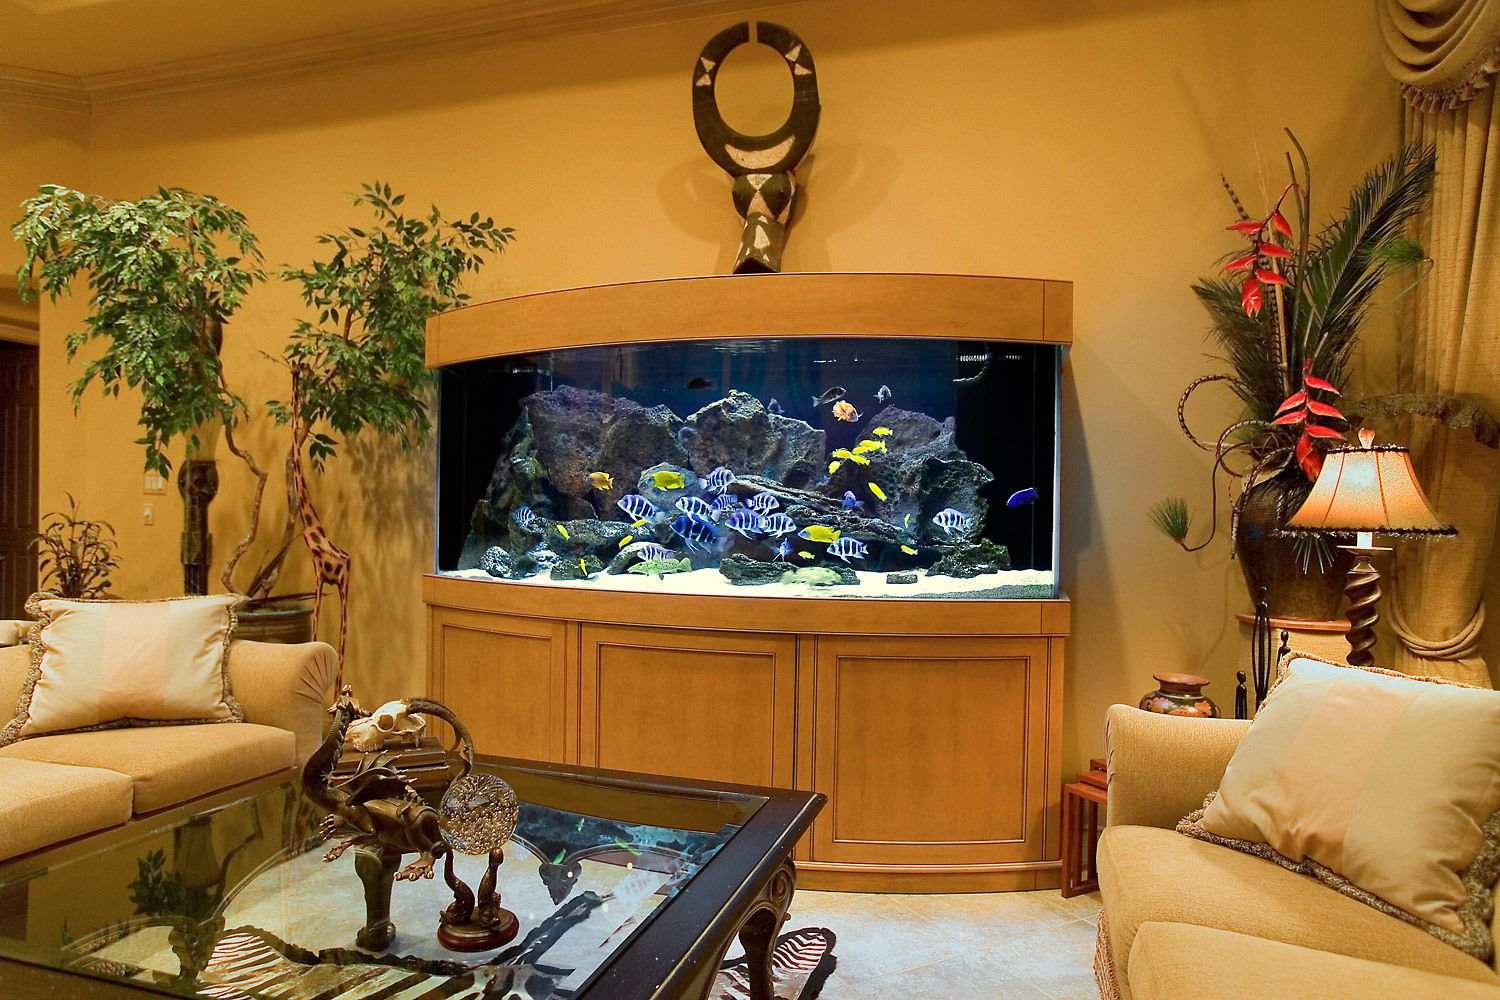 planet-custom-aquarium-26